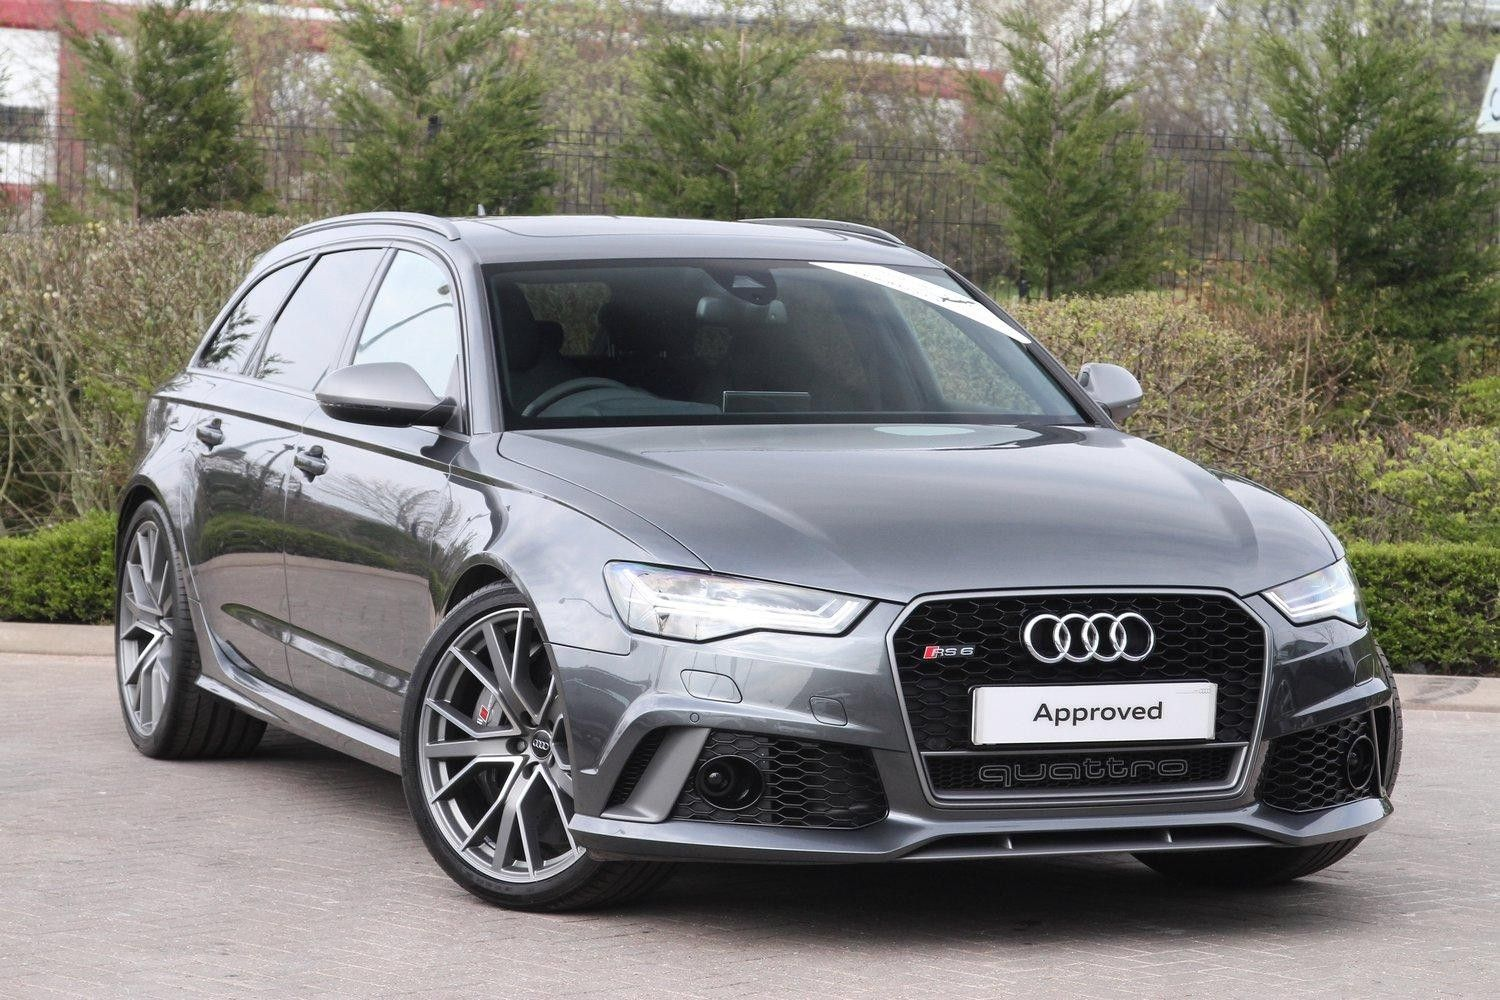 605PS Family Car 0-60 in 3.7 seconds Audi Rs6 is a legend http://www ...